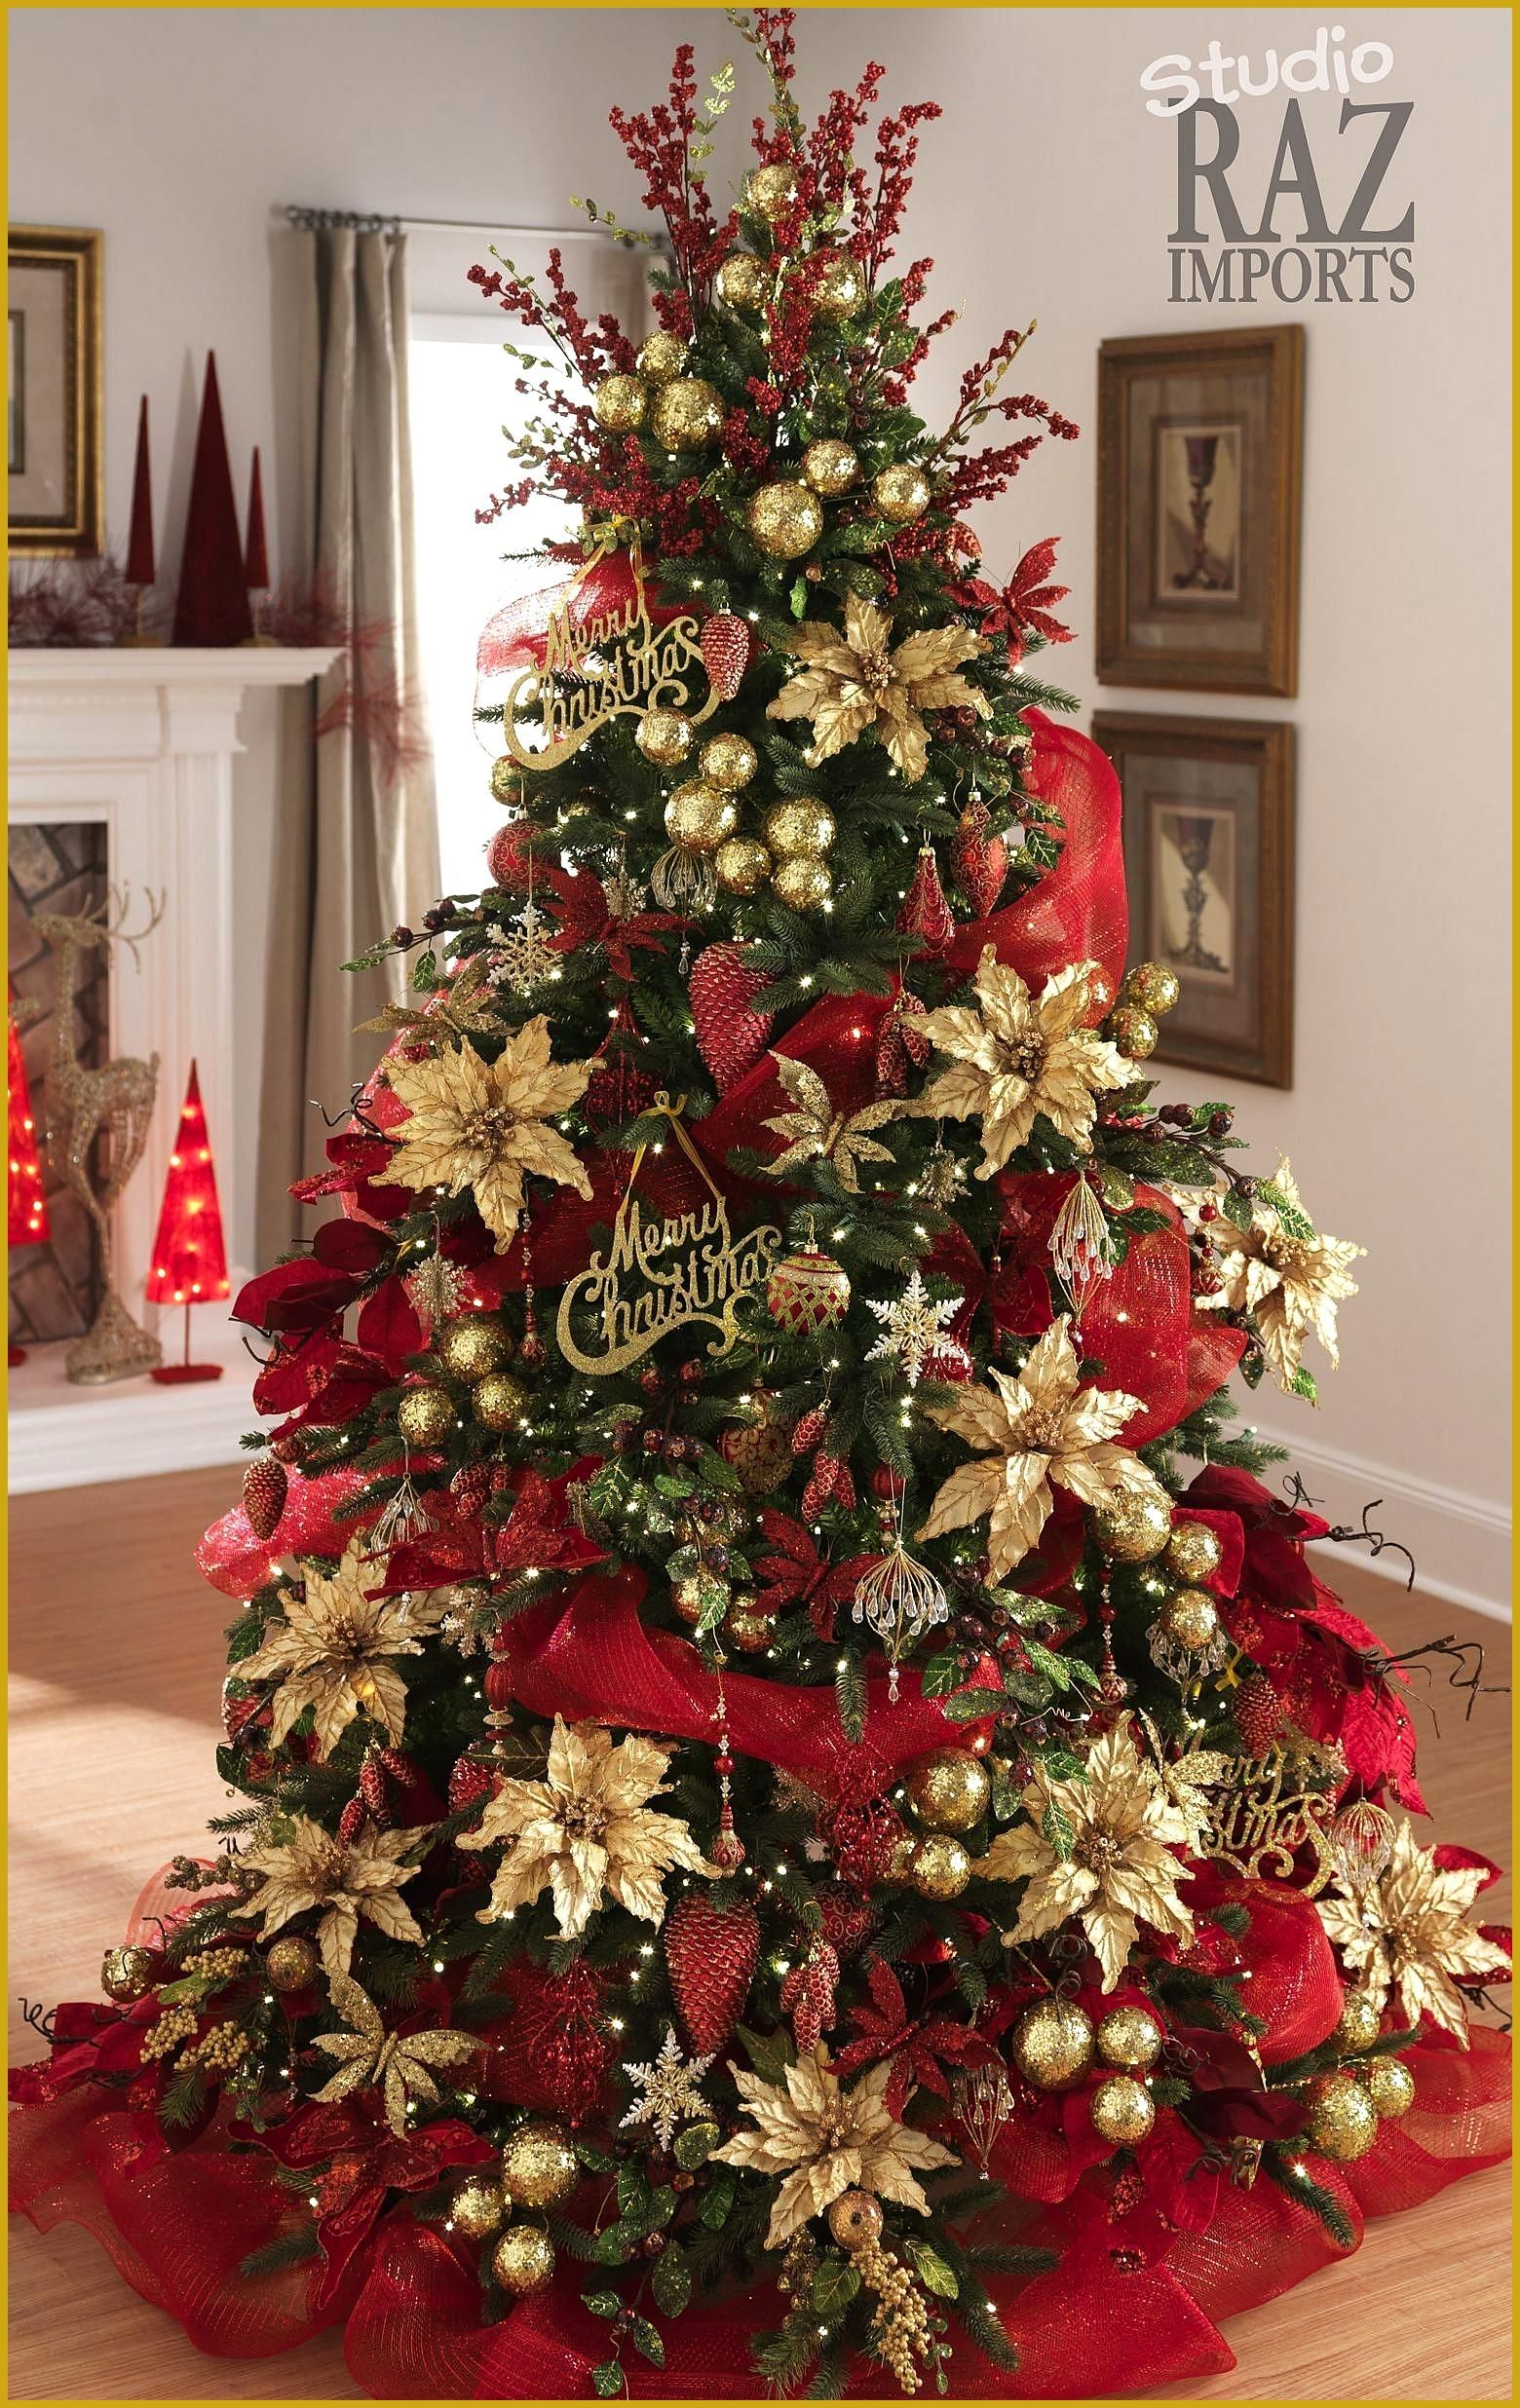 Christmas Designer Ideas For 2021 Are You Looking For Ideas For Christmas Quotes Navigate Here For Perfect Christmas Cool Christmas Trees Gold Christmas Decorations Red And Gold Christmas Tree